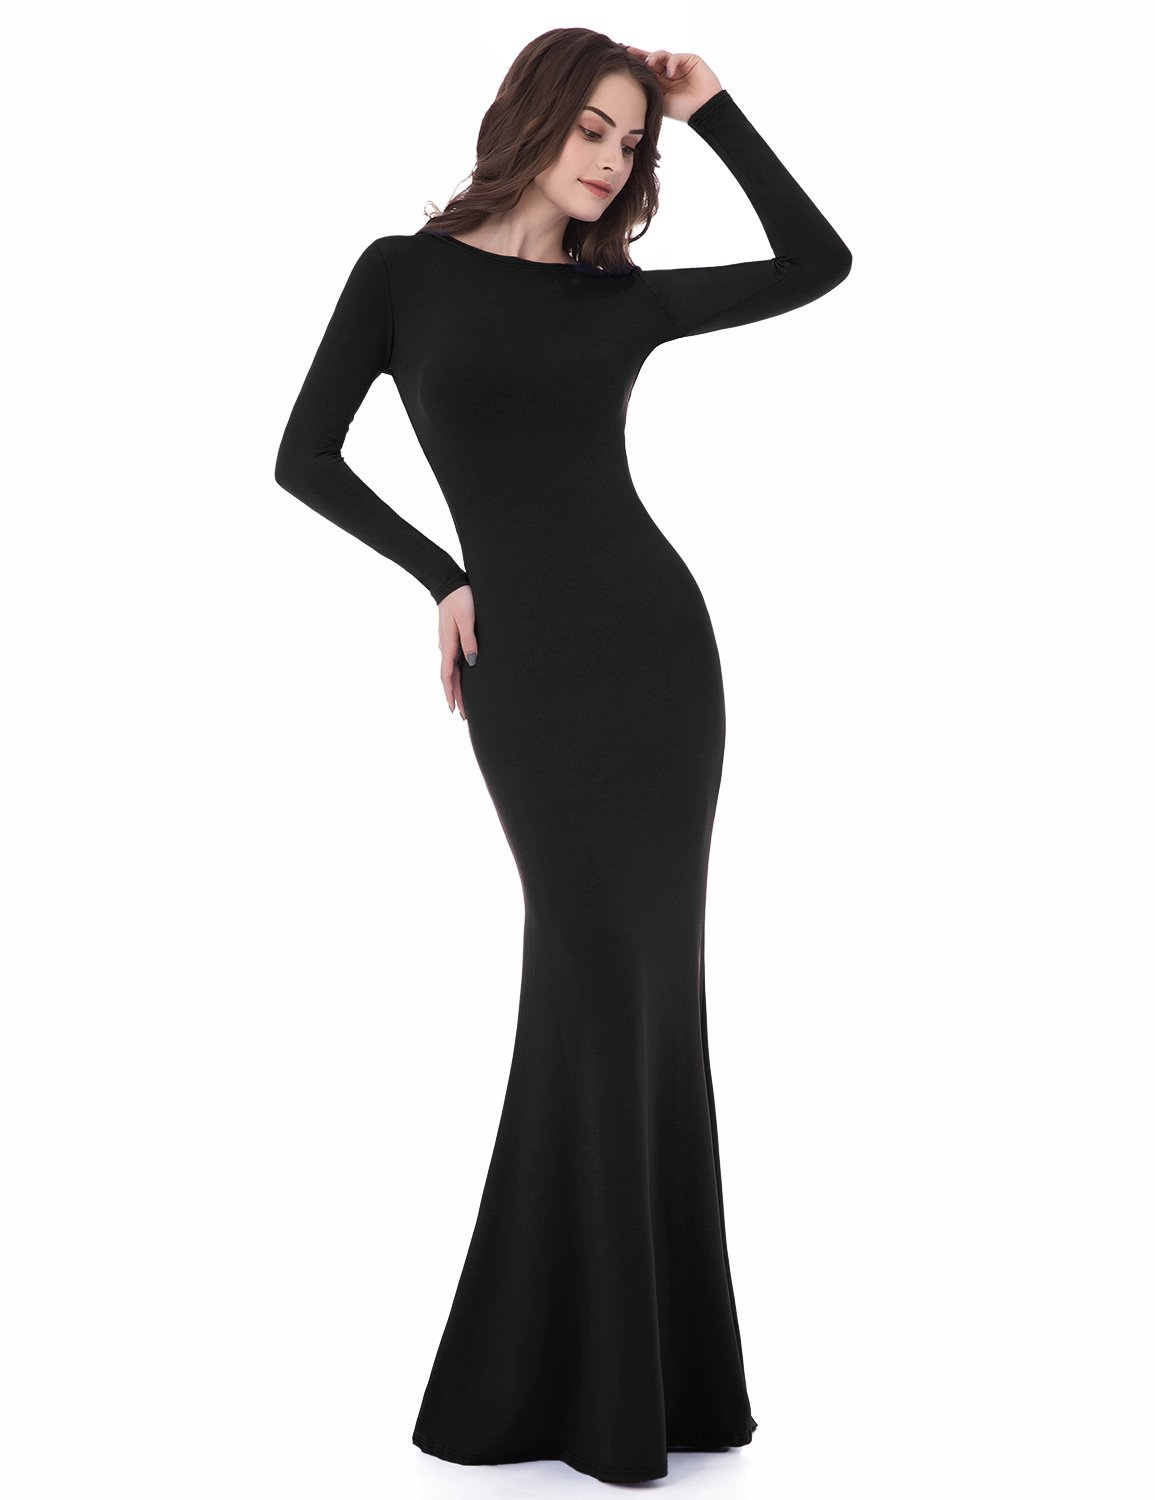 Sarahbridal Women's Black Long Sleeve Backless Sheath Prom Gown CLF015